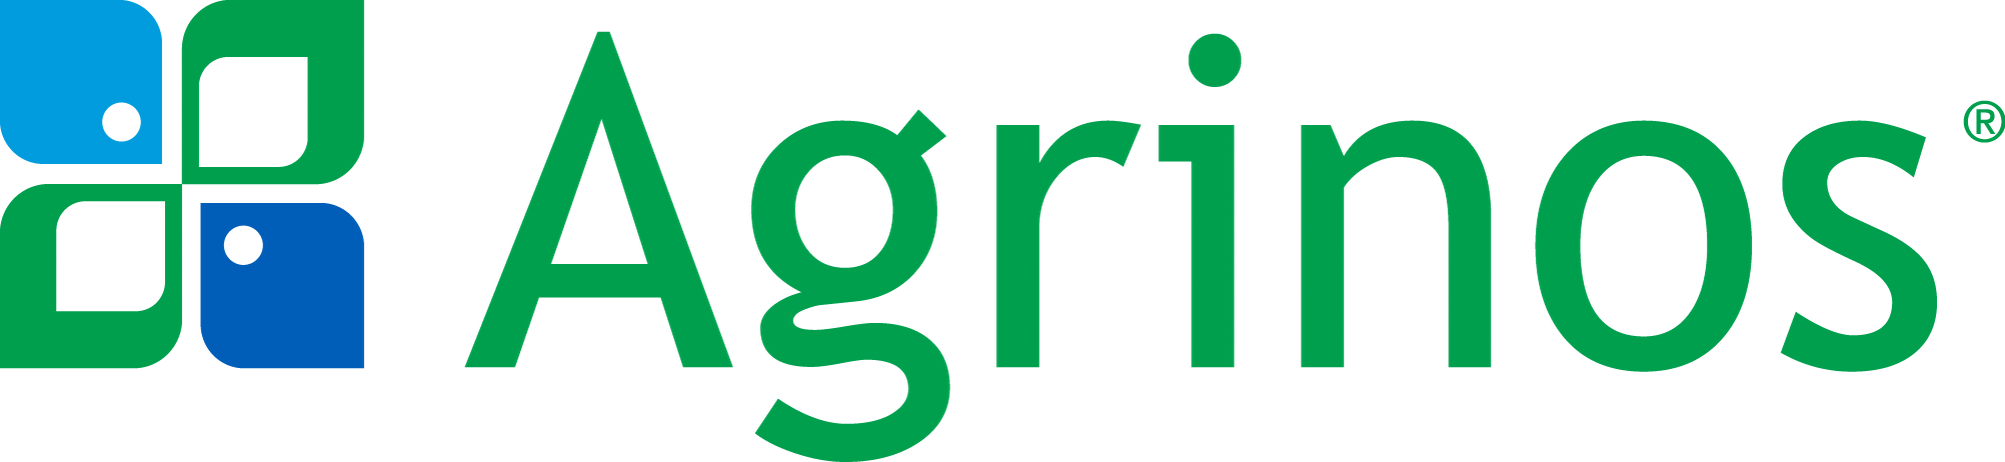 Agrinos | Innovative Biological Crop Inputs